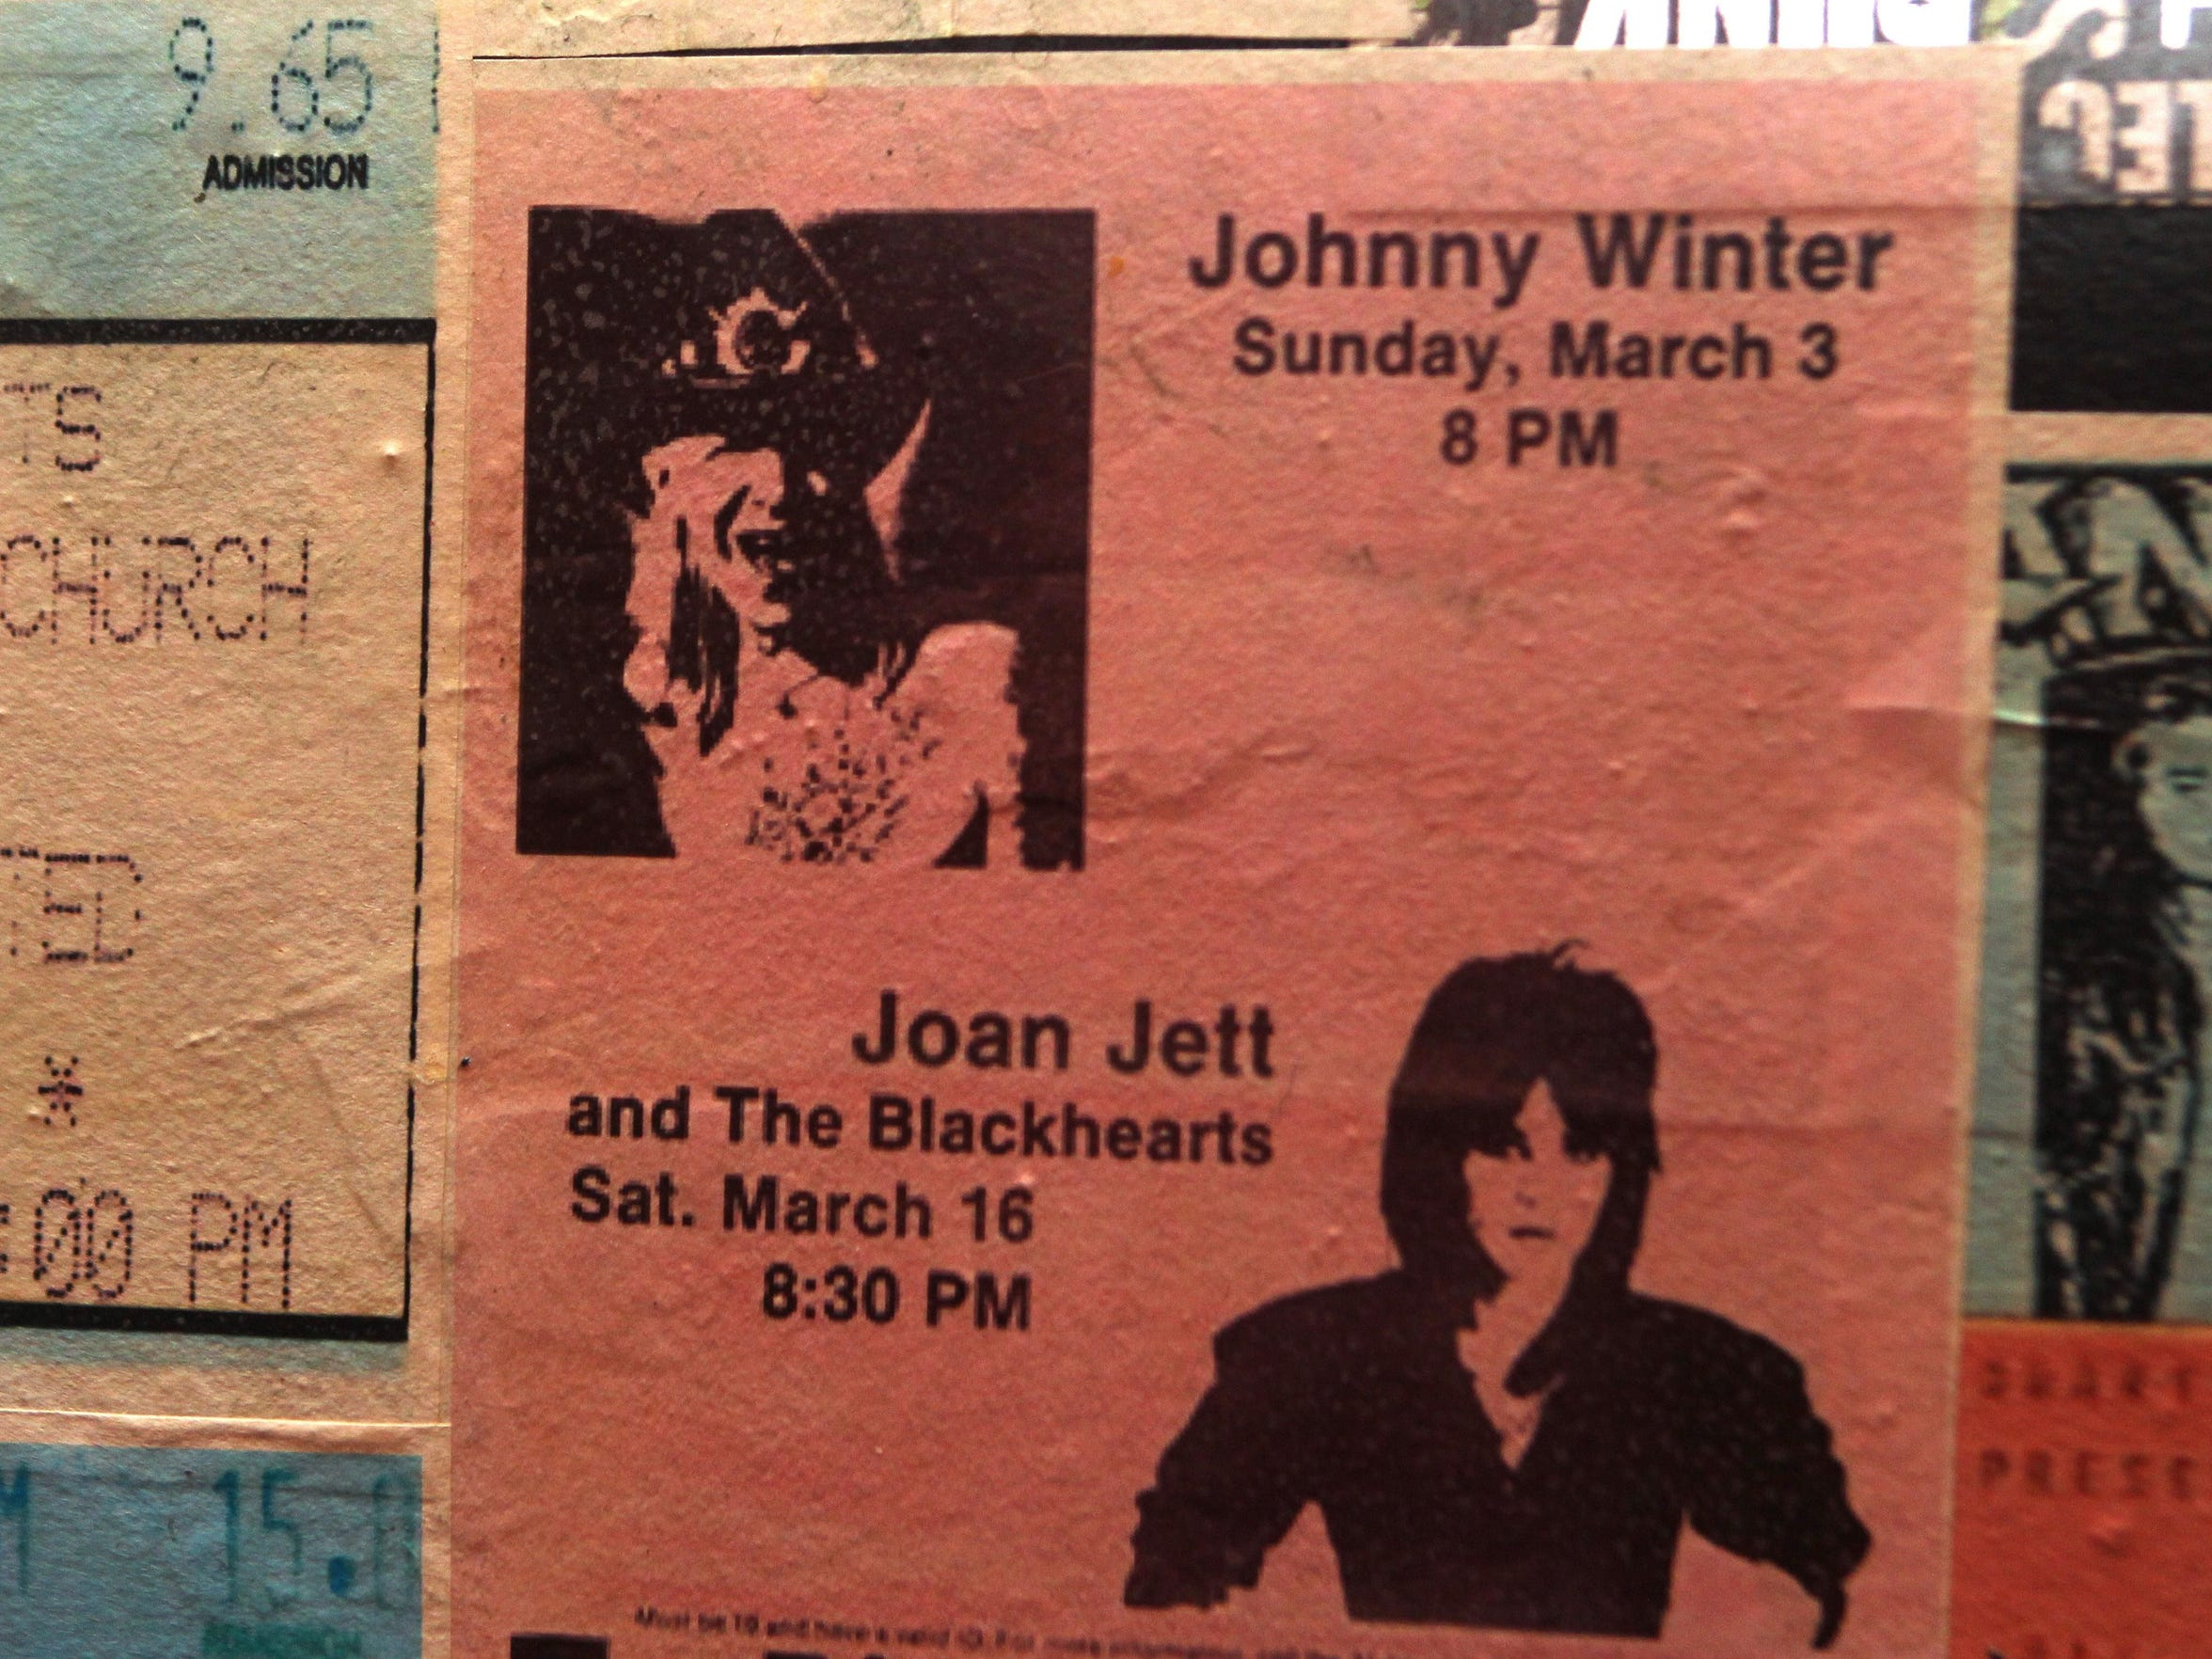 Enlarged copies of tickets from bands that have played